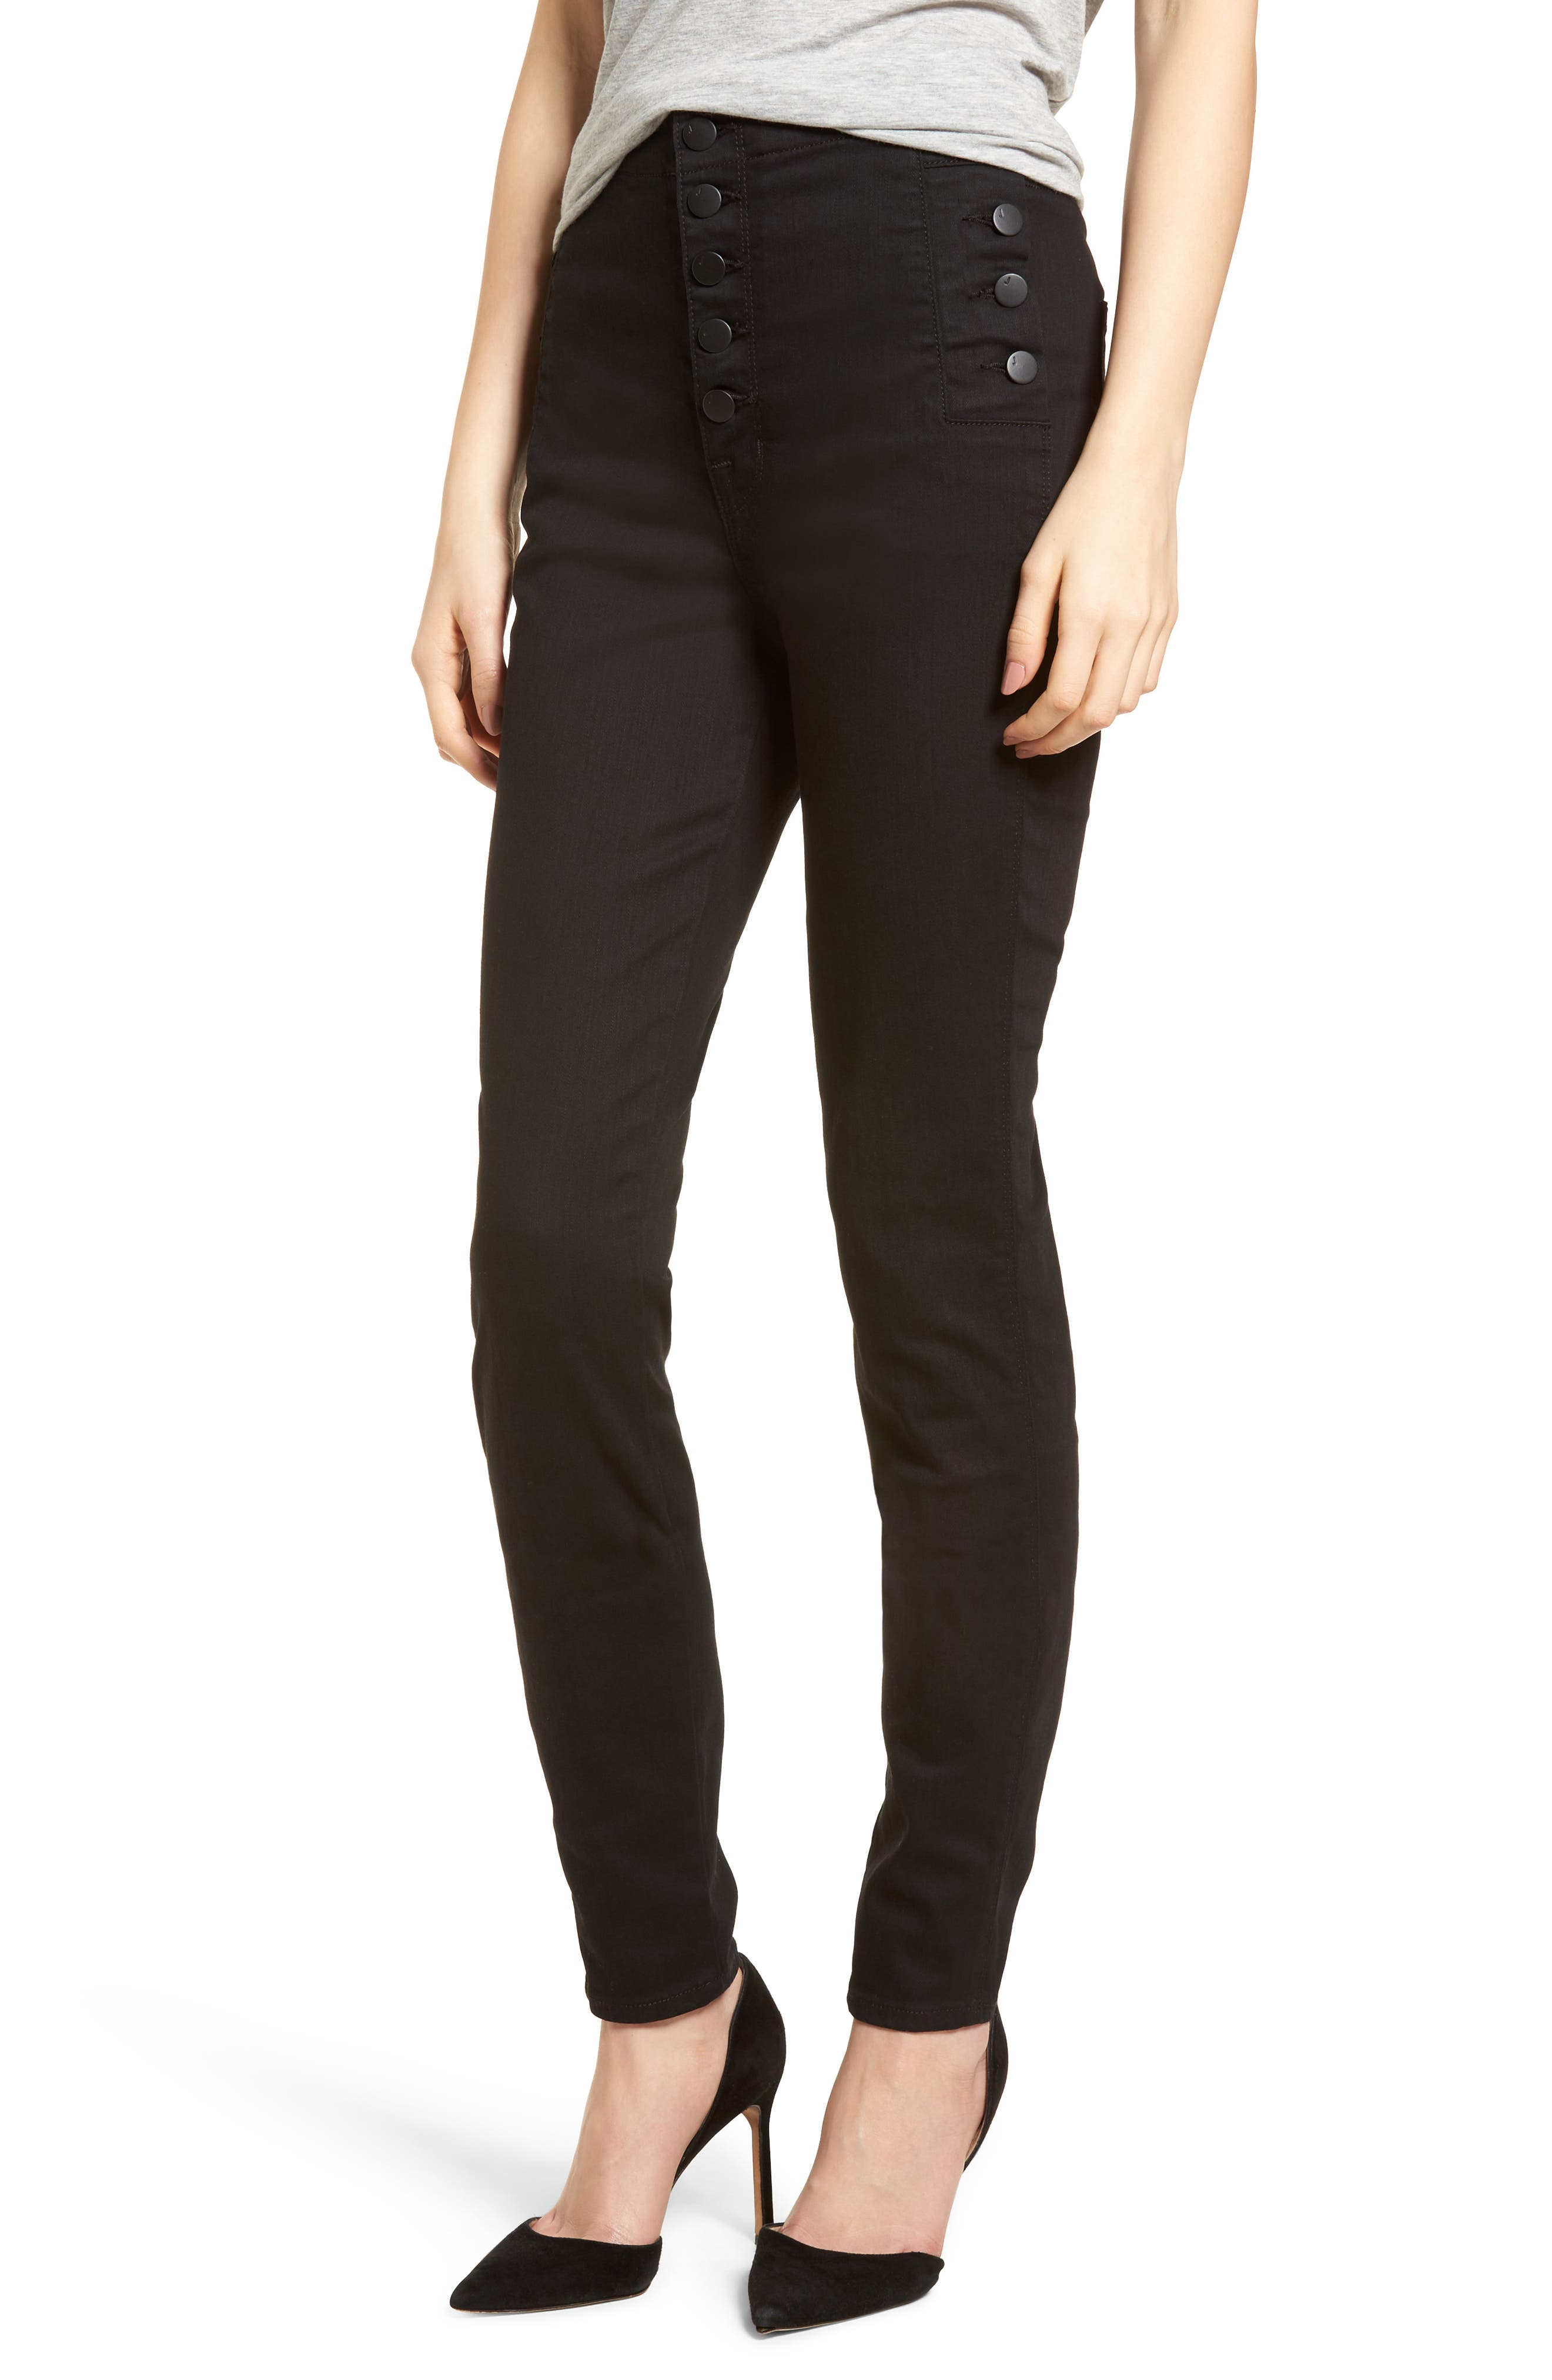 Natasha Photoready High Waist Skinny Jeans,                         Main,                         color, Vanity